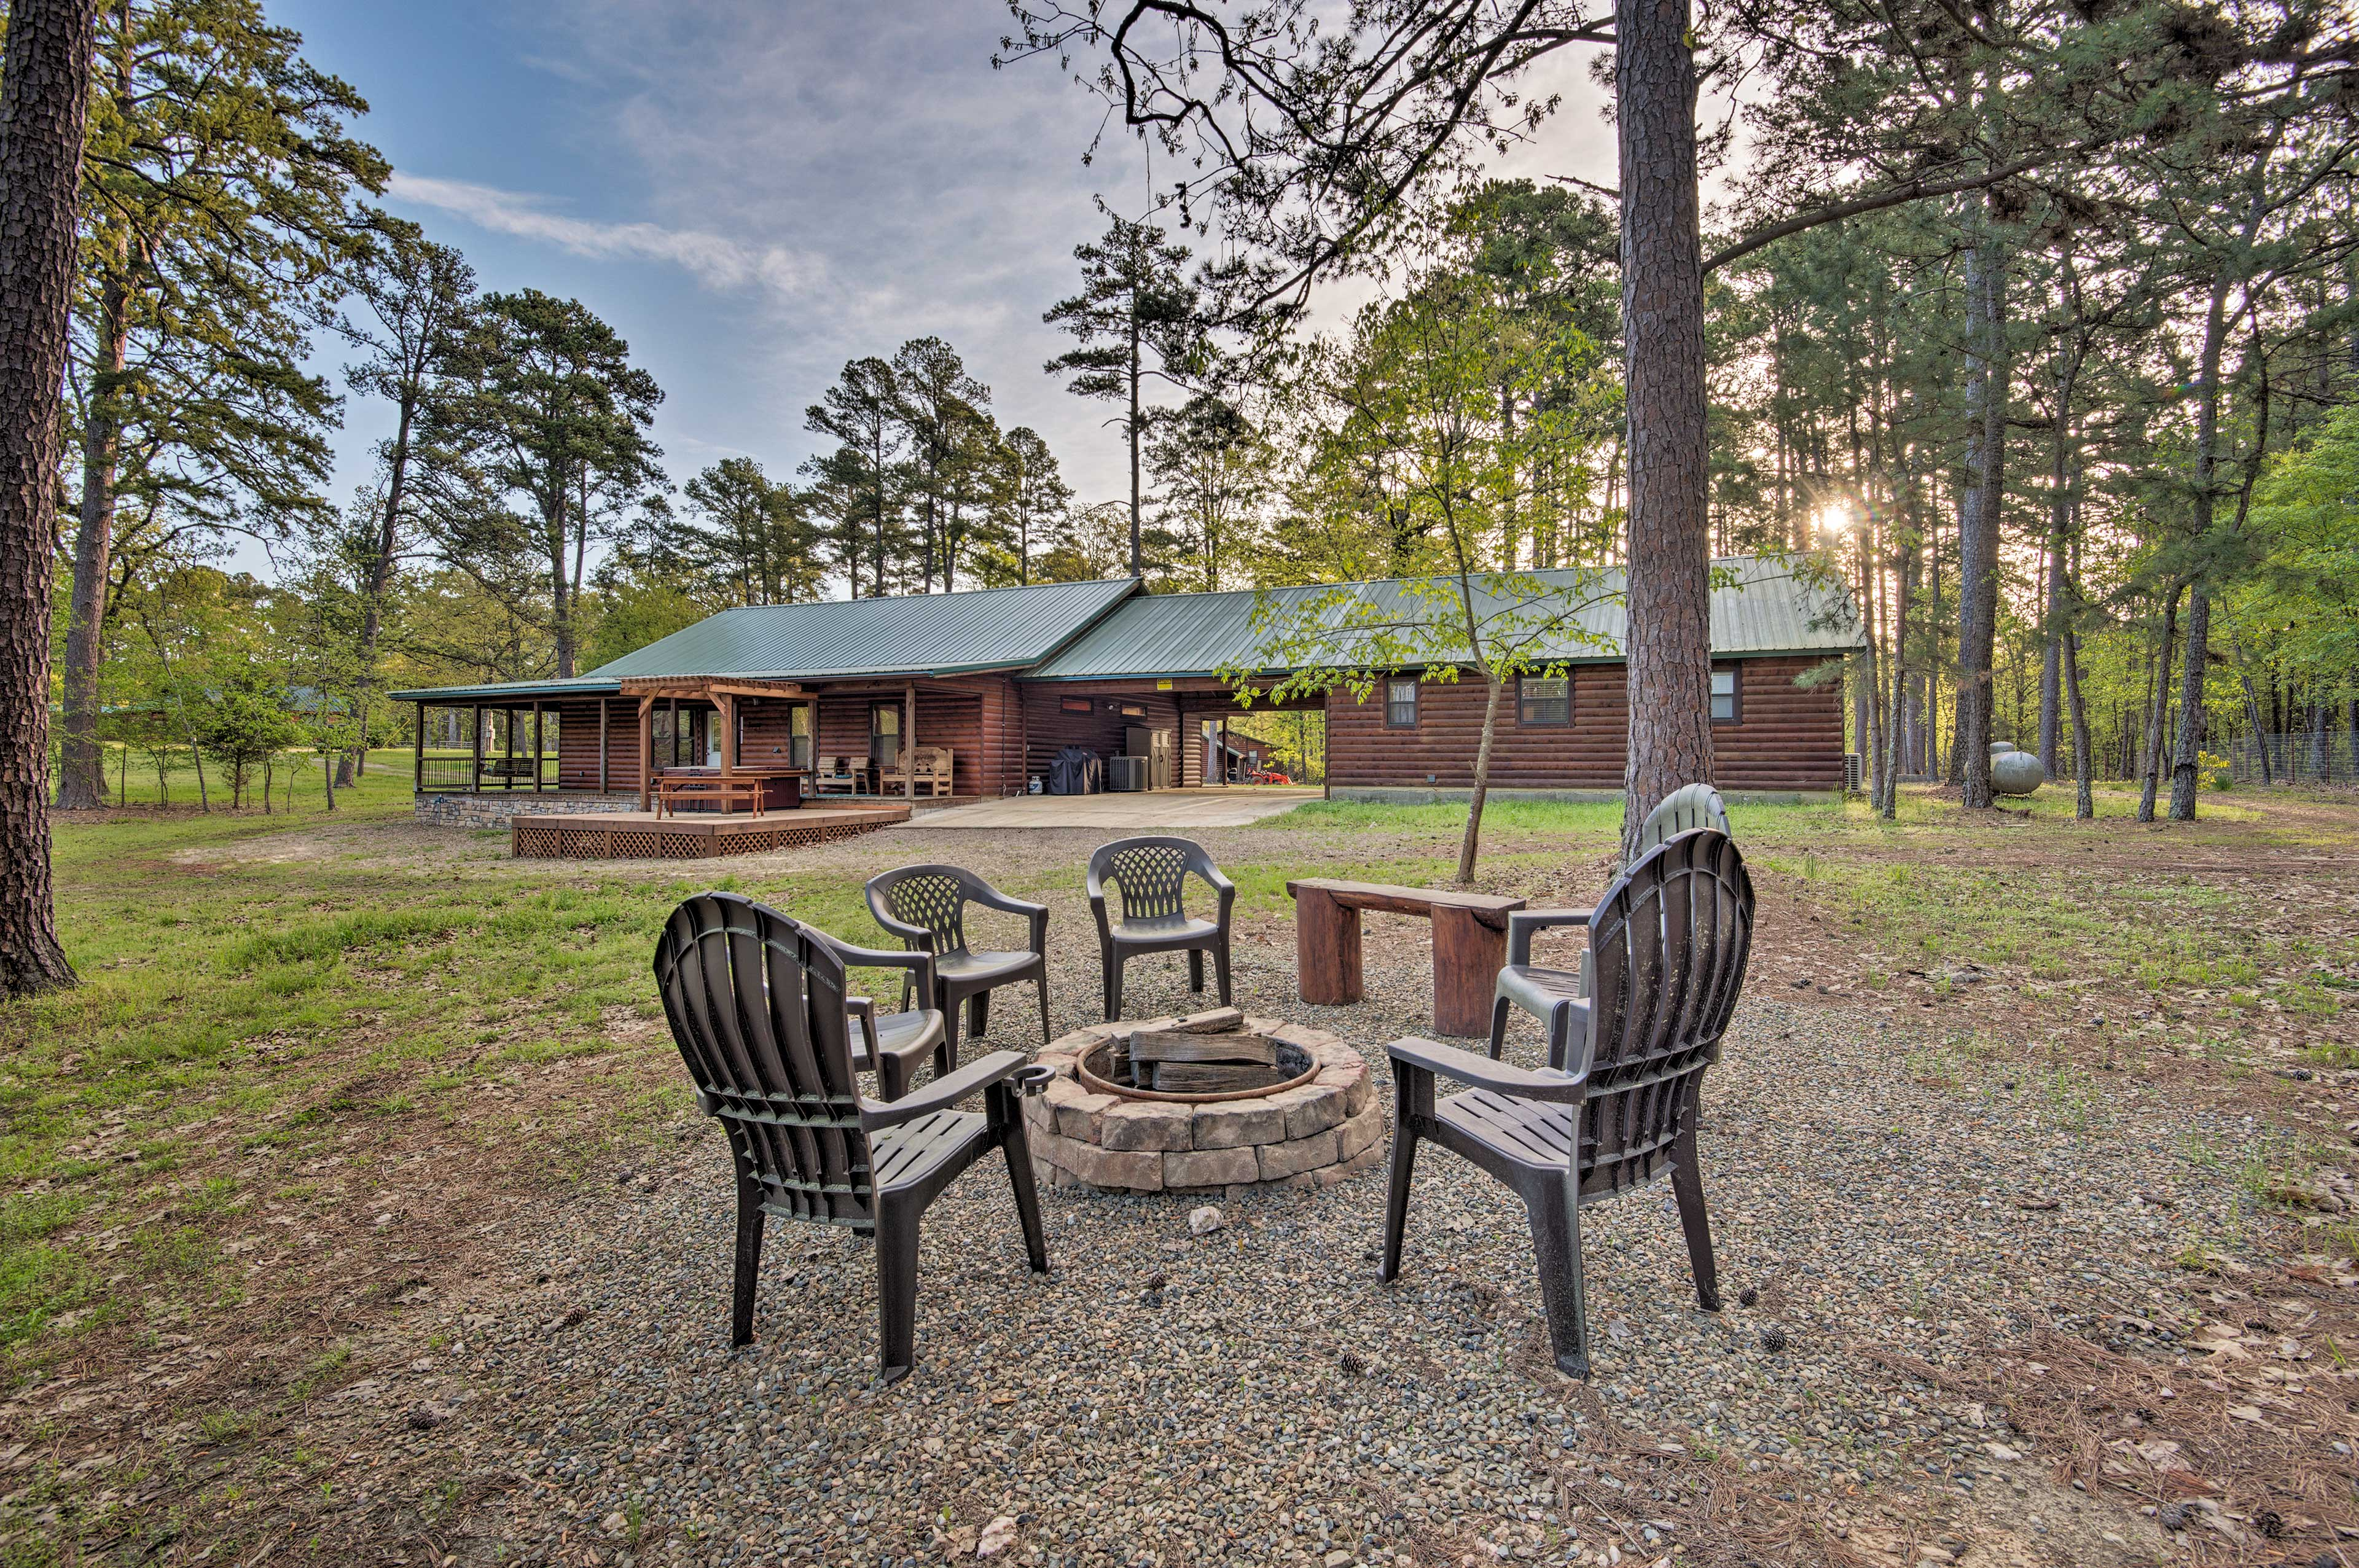 This 3-bed, 3-bath home features quintessential cabin amenities like a fire pit!